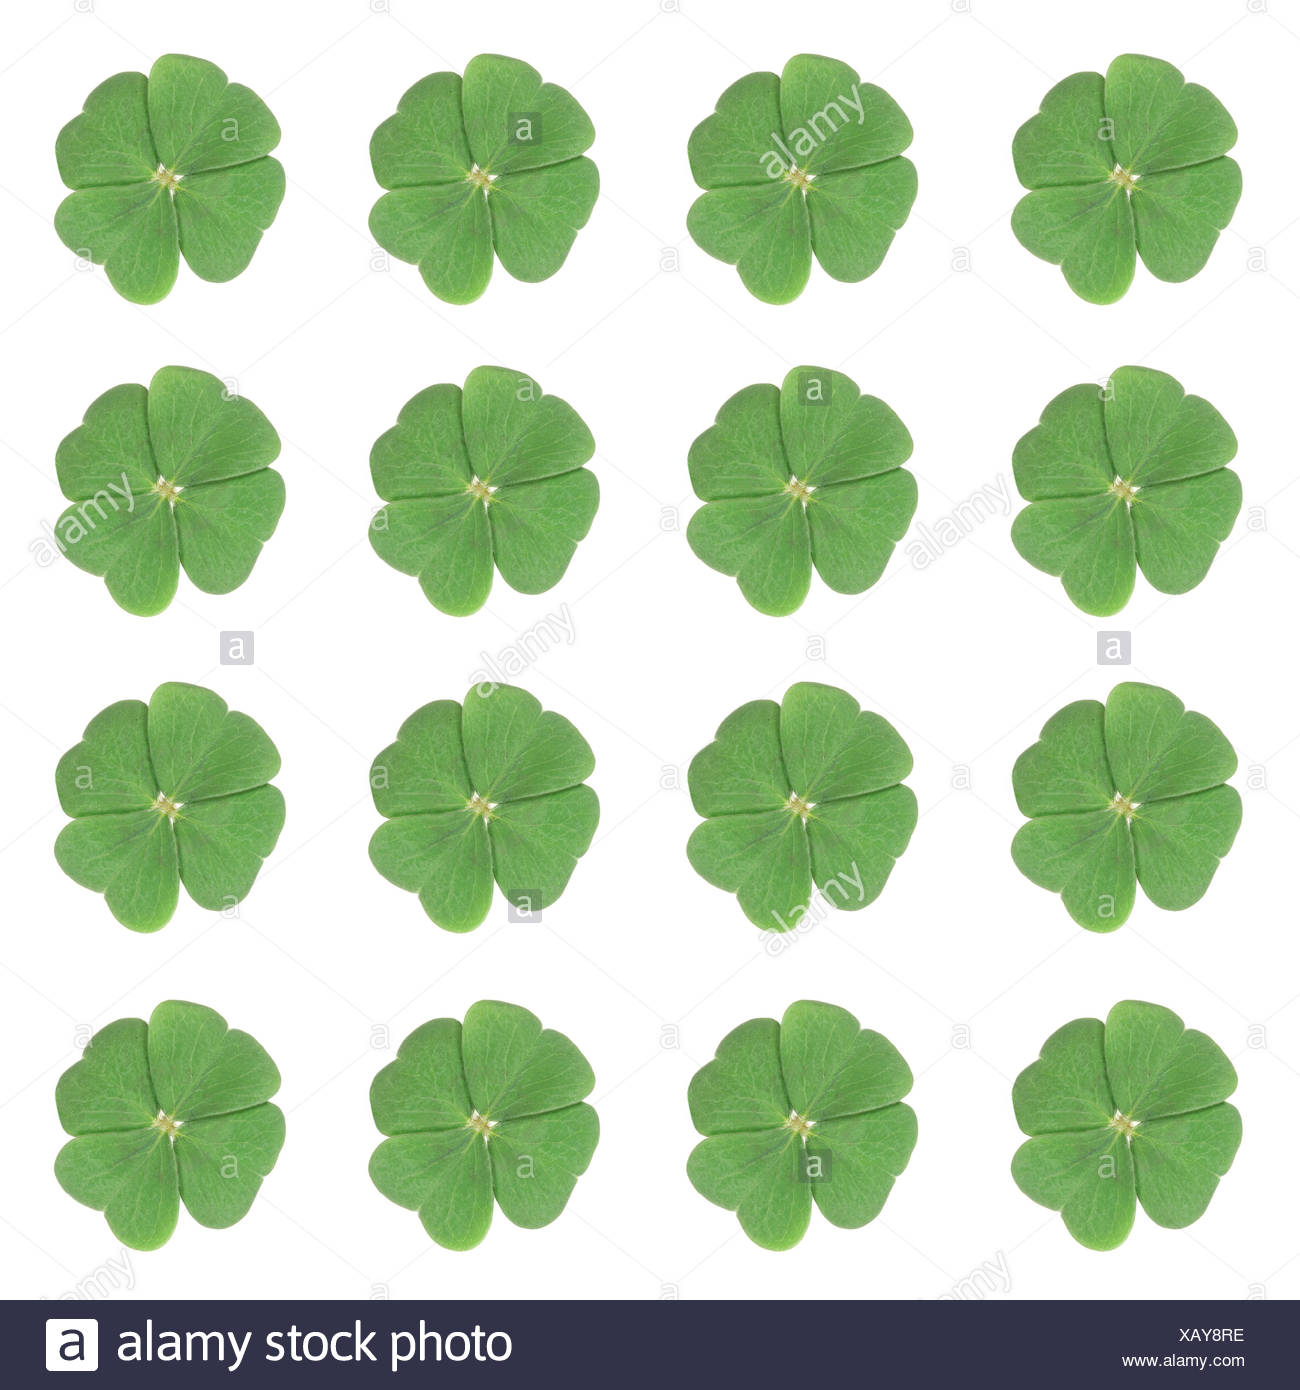 Sixteen four-leaf-clovers arranged symmetrically - Stock Image